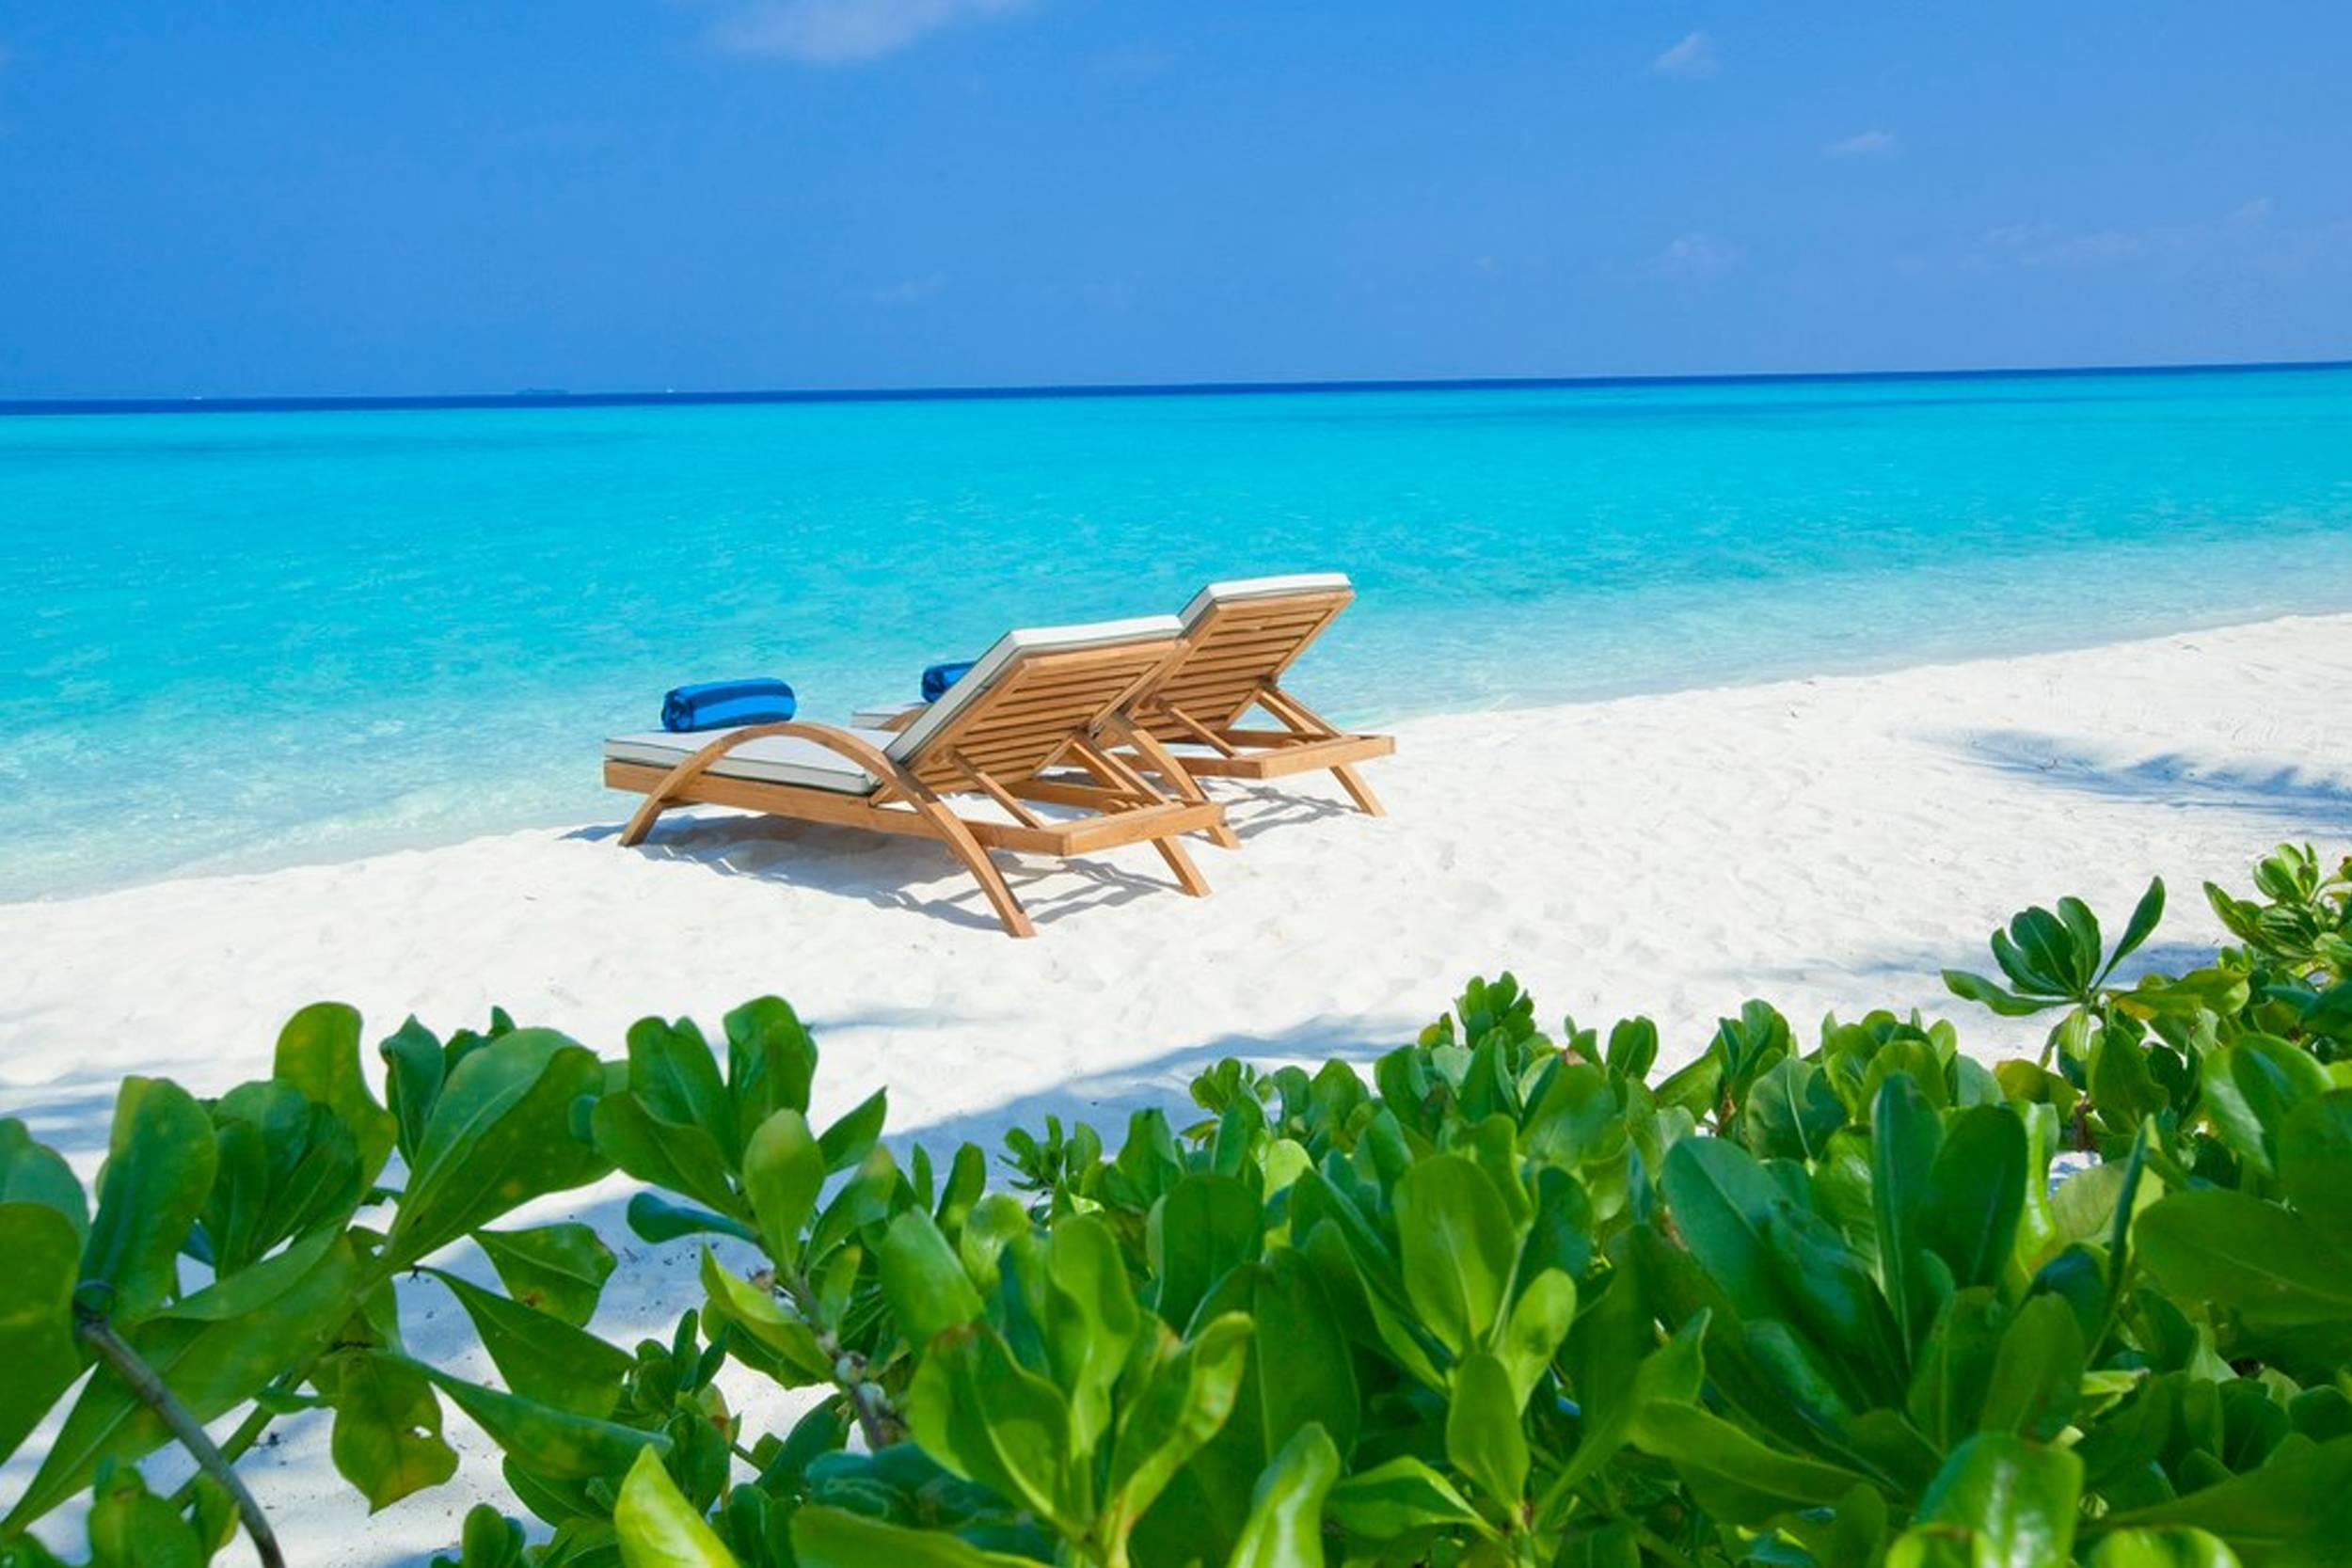 Maldives Beach Wallpapers HD 2500x1667